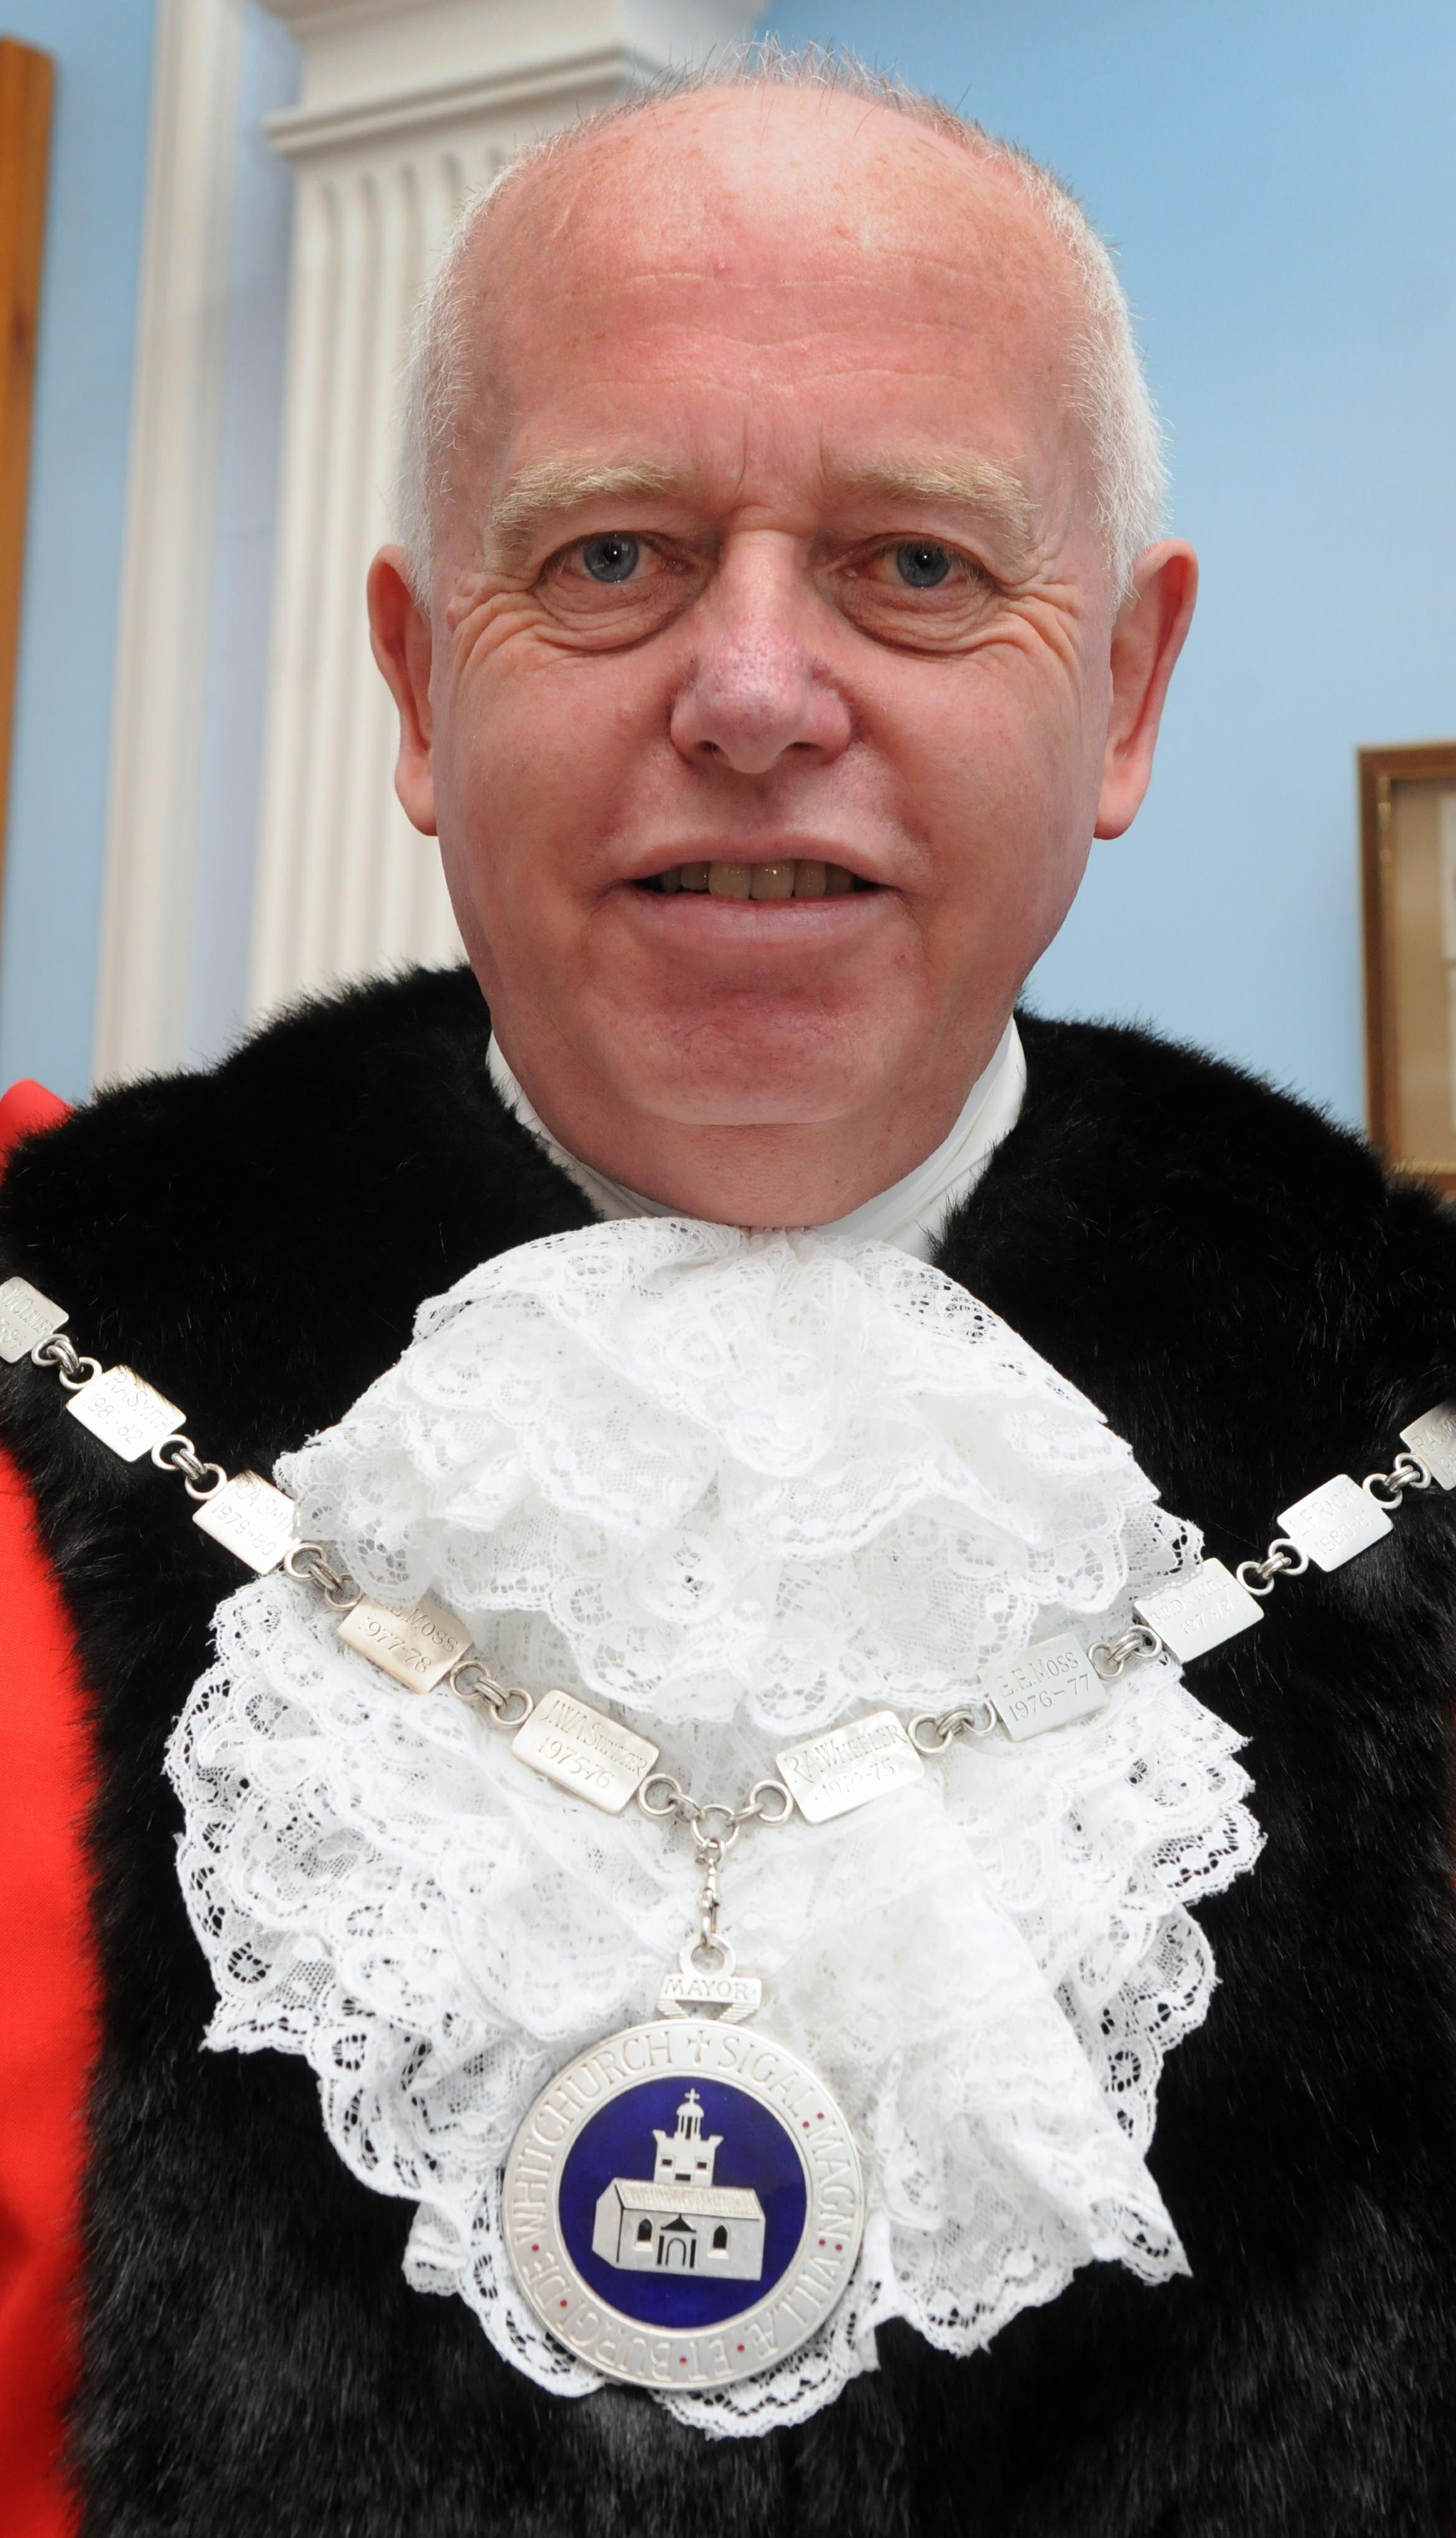 Former Whitchurch Mayor John Clark